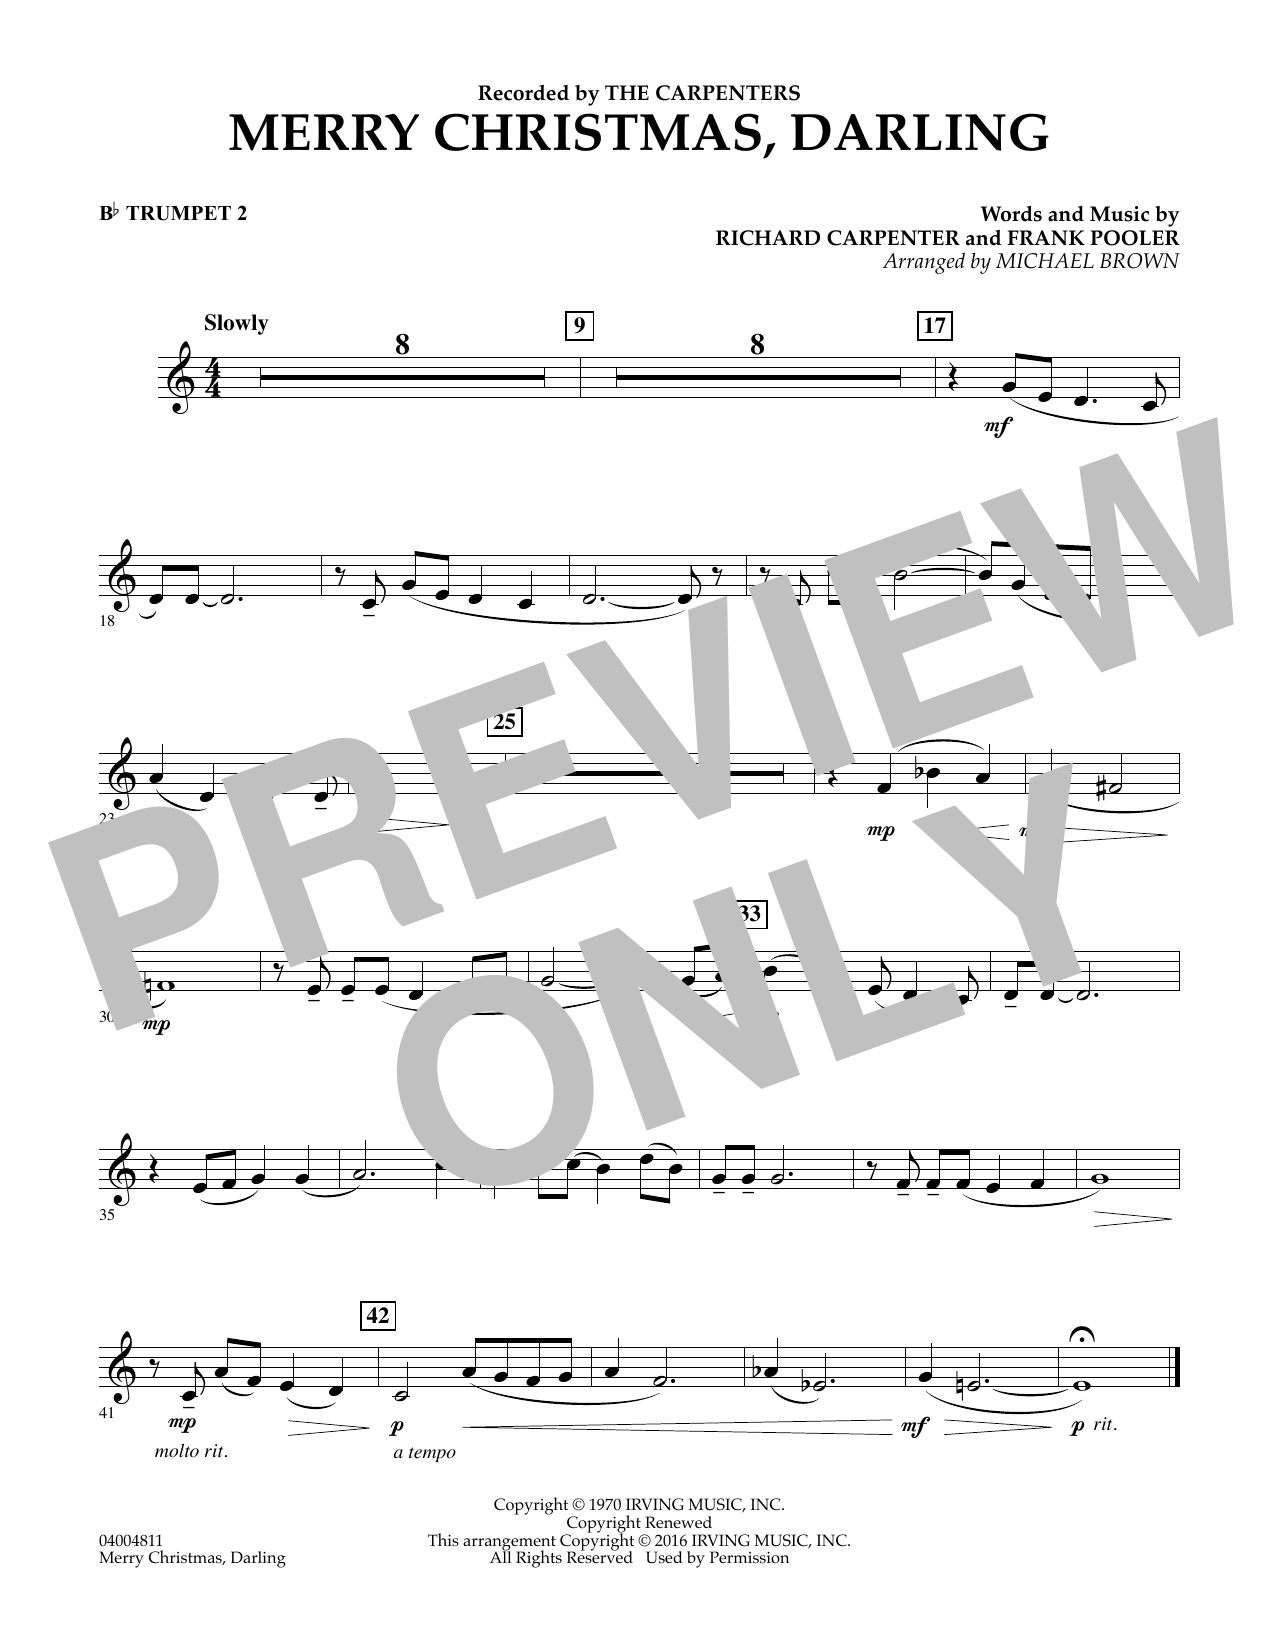 merry christmas darling bb trumpet 1 by frank pooler richard carpenter the carpenters